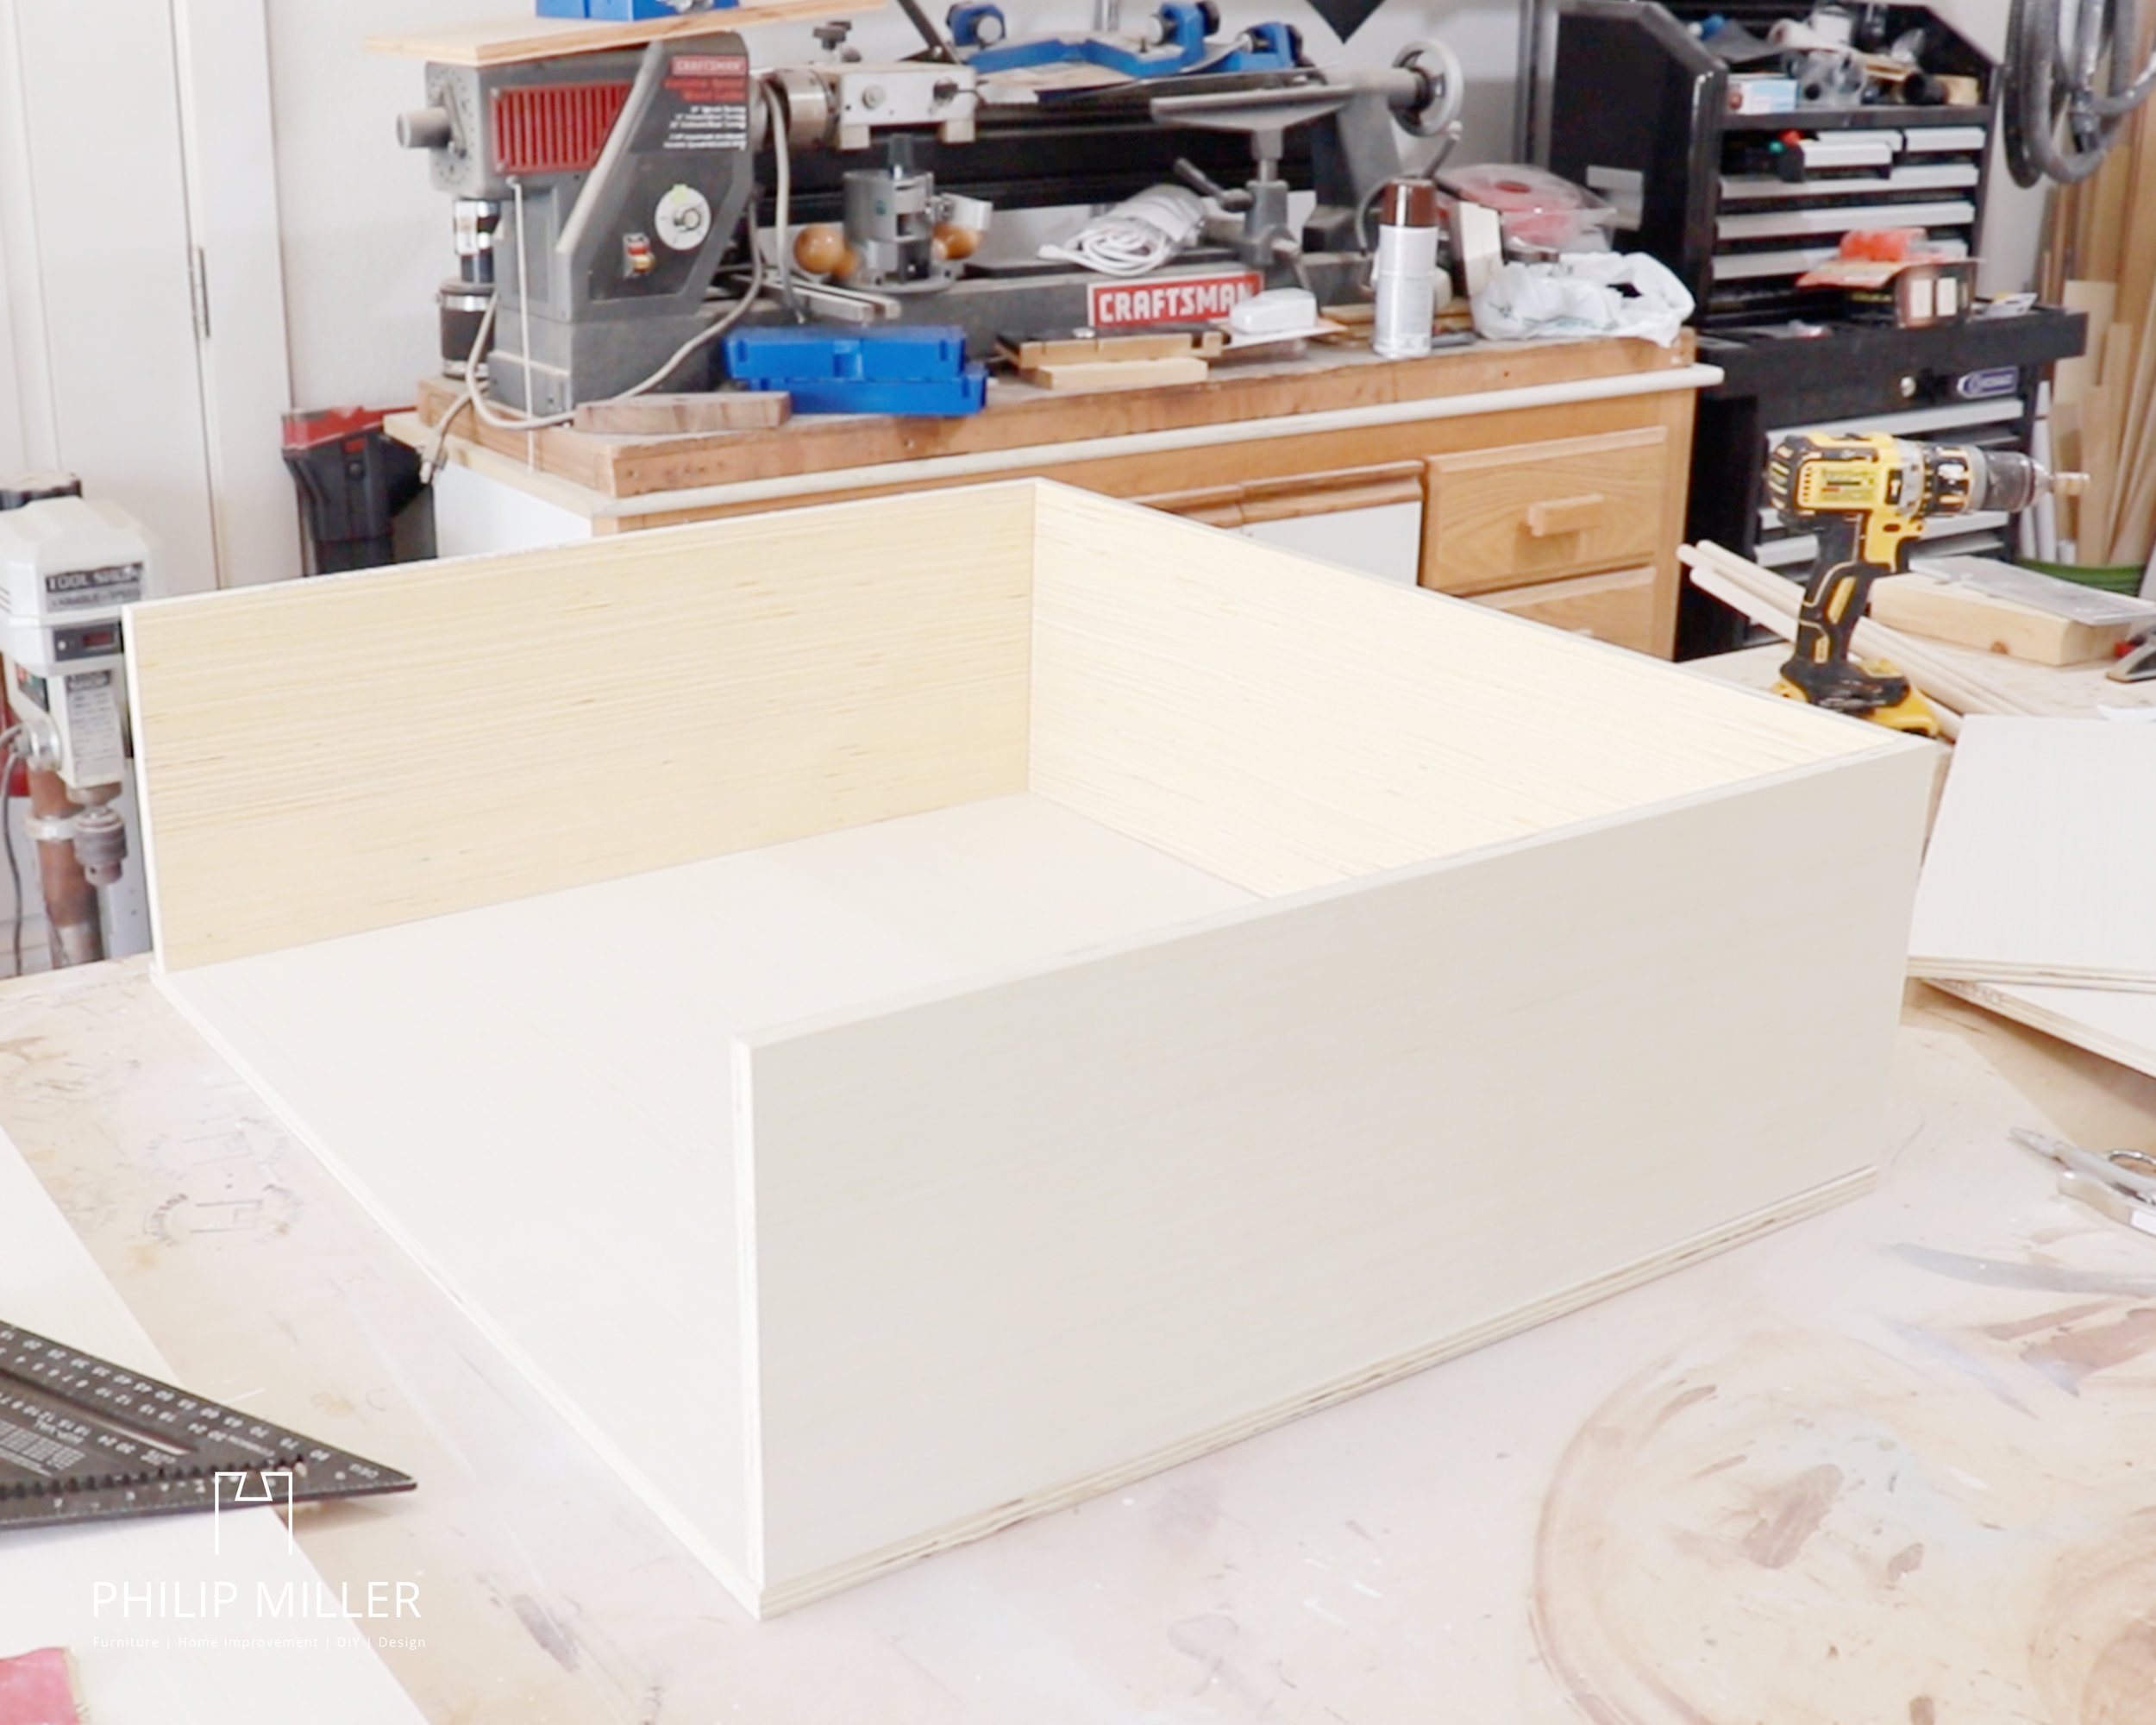 making a box for ring toss game half inch plywood on a work bench